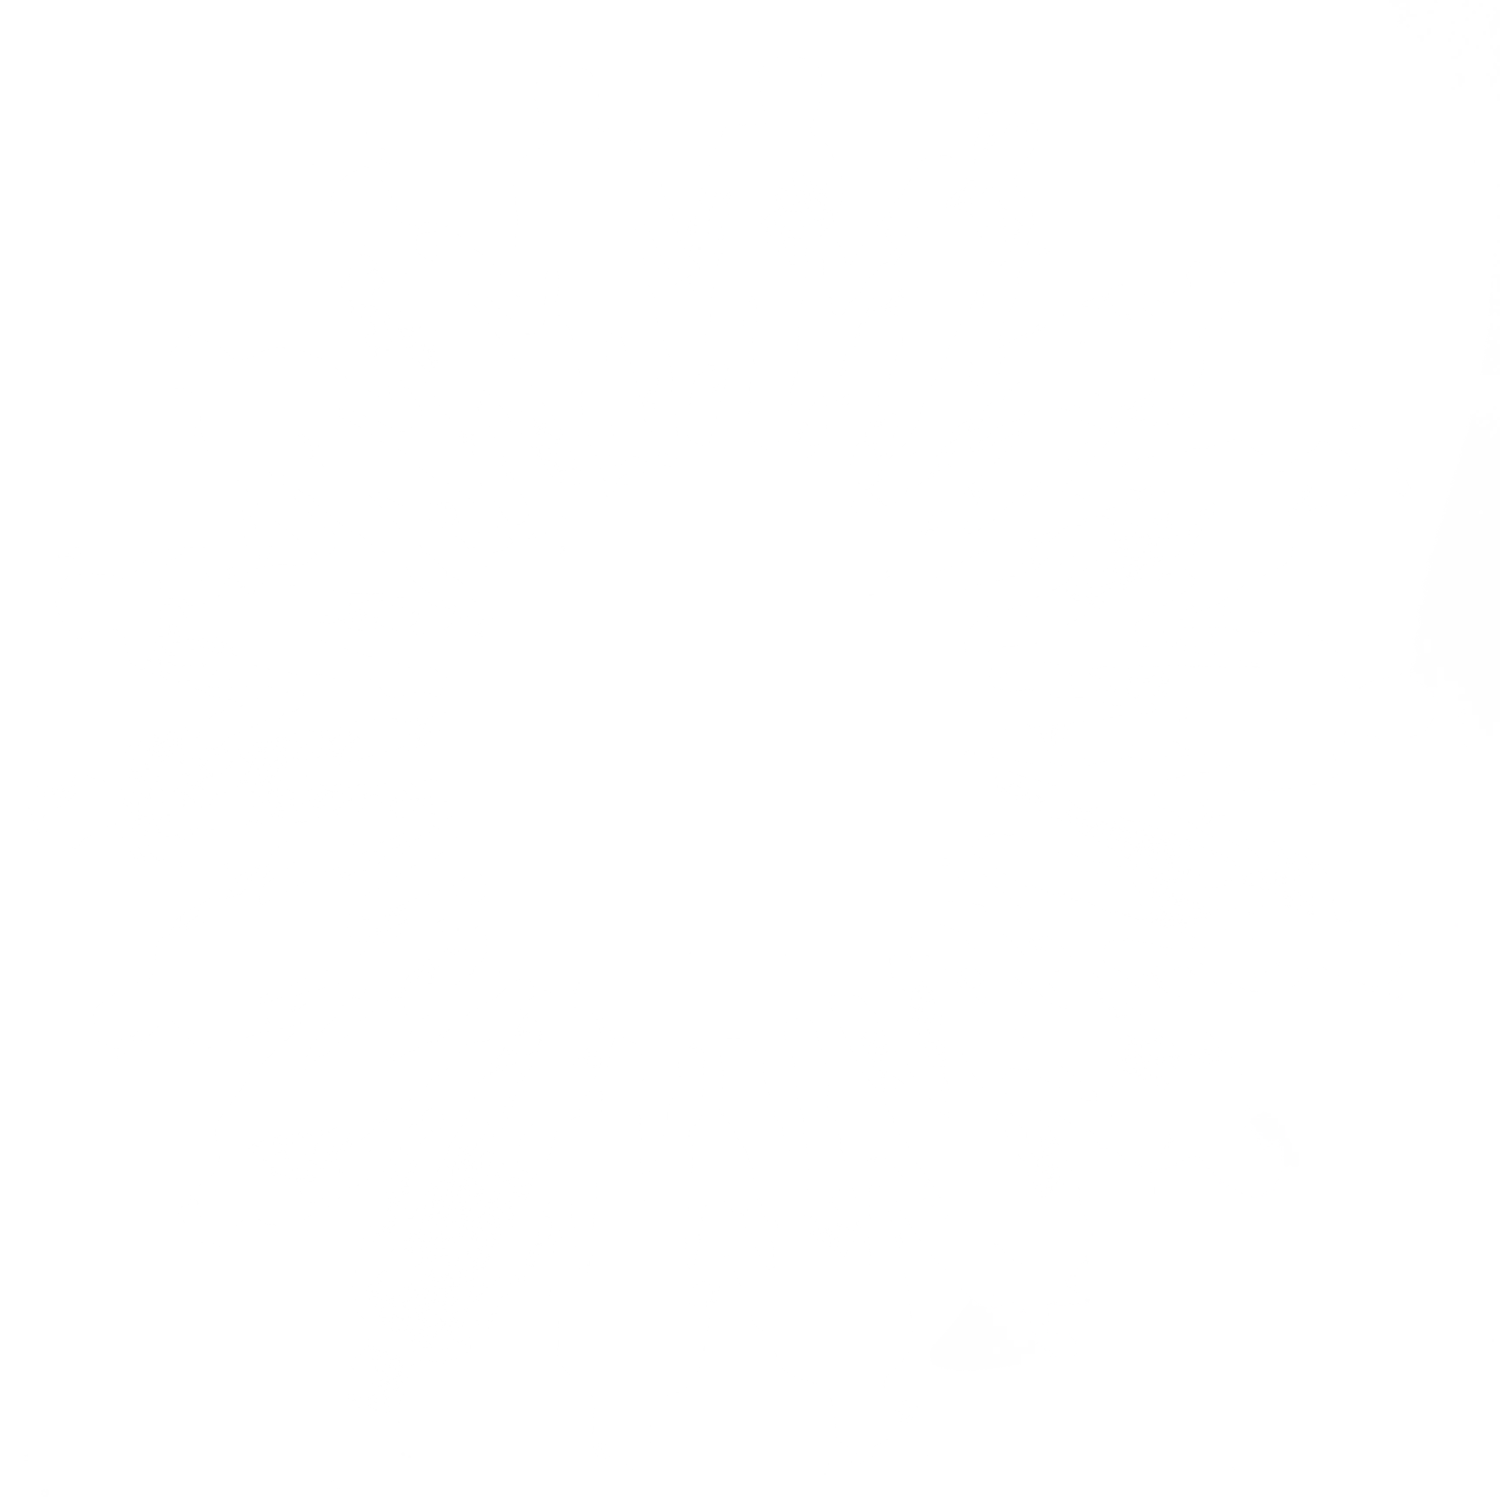 THE MAGIC MUMBLE JUMBLE